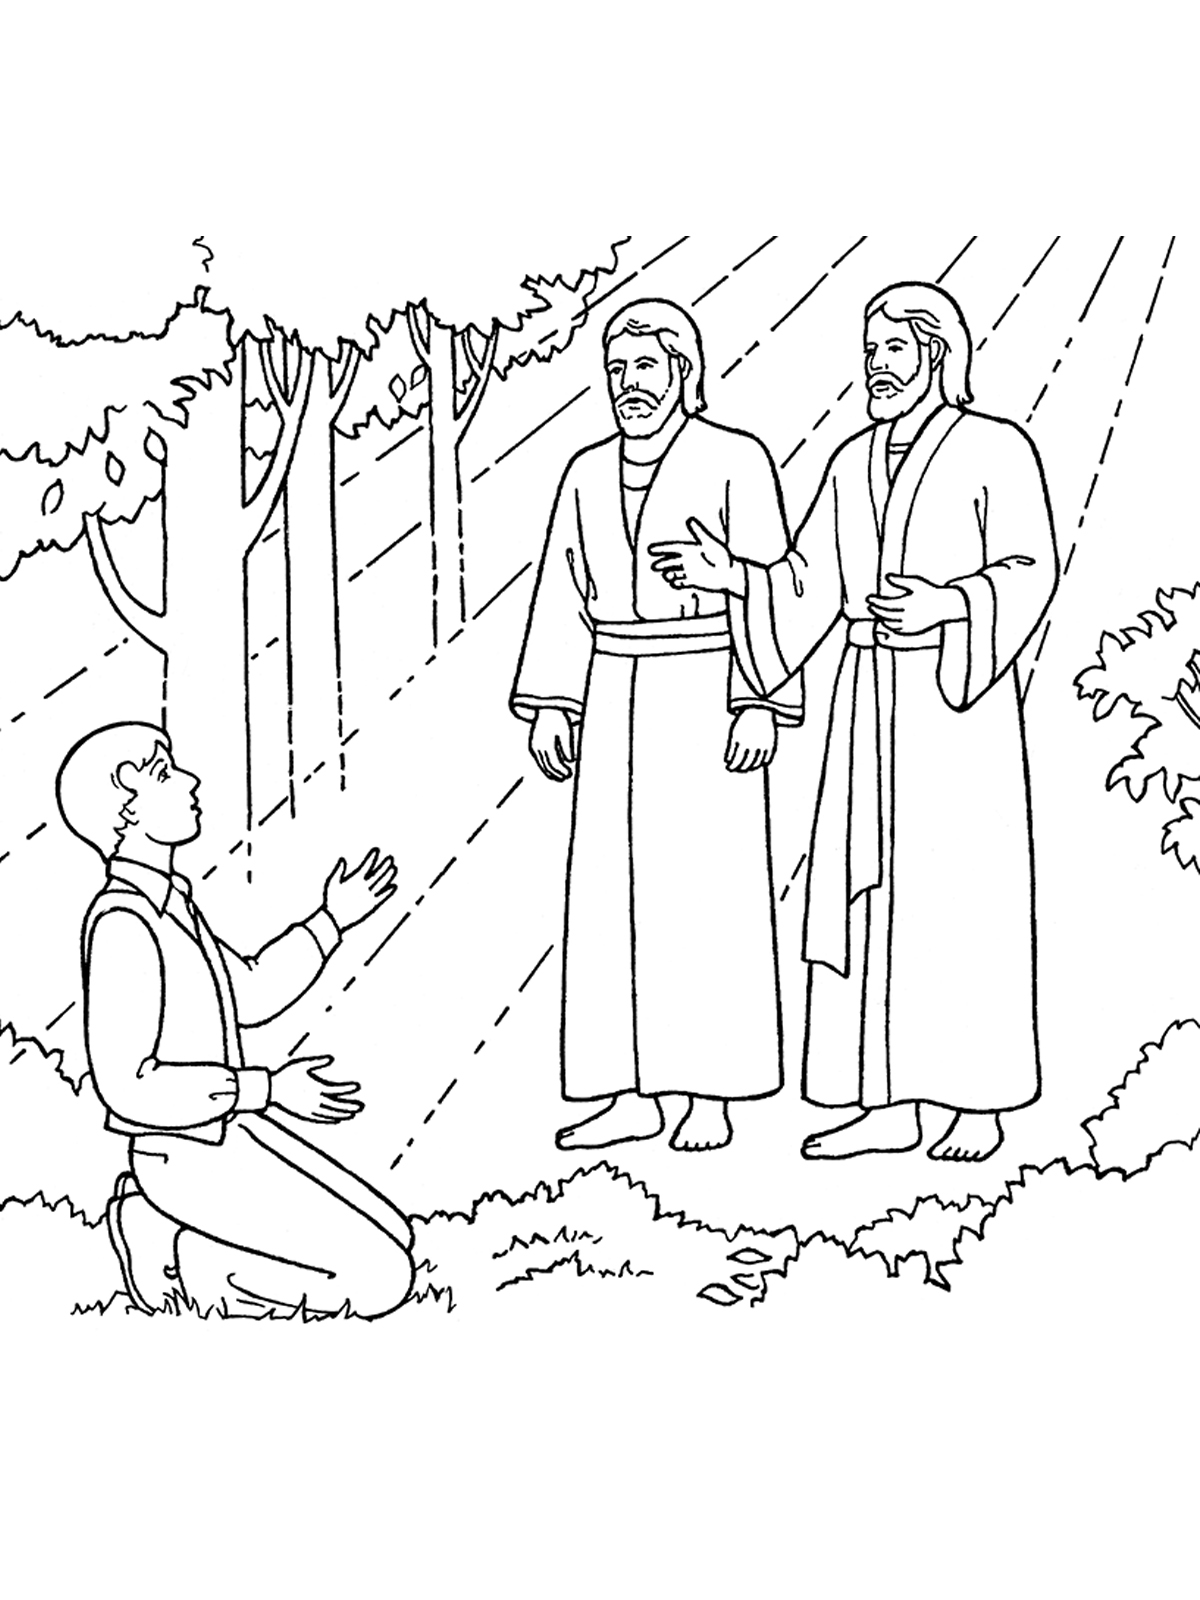 joseph smith coloring pages The First Vision: Joseph Sees God the Father and Jesus Christ joseph smith coloring pages